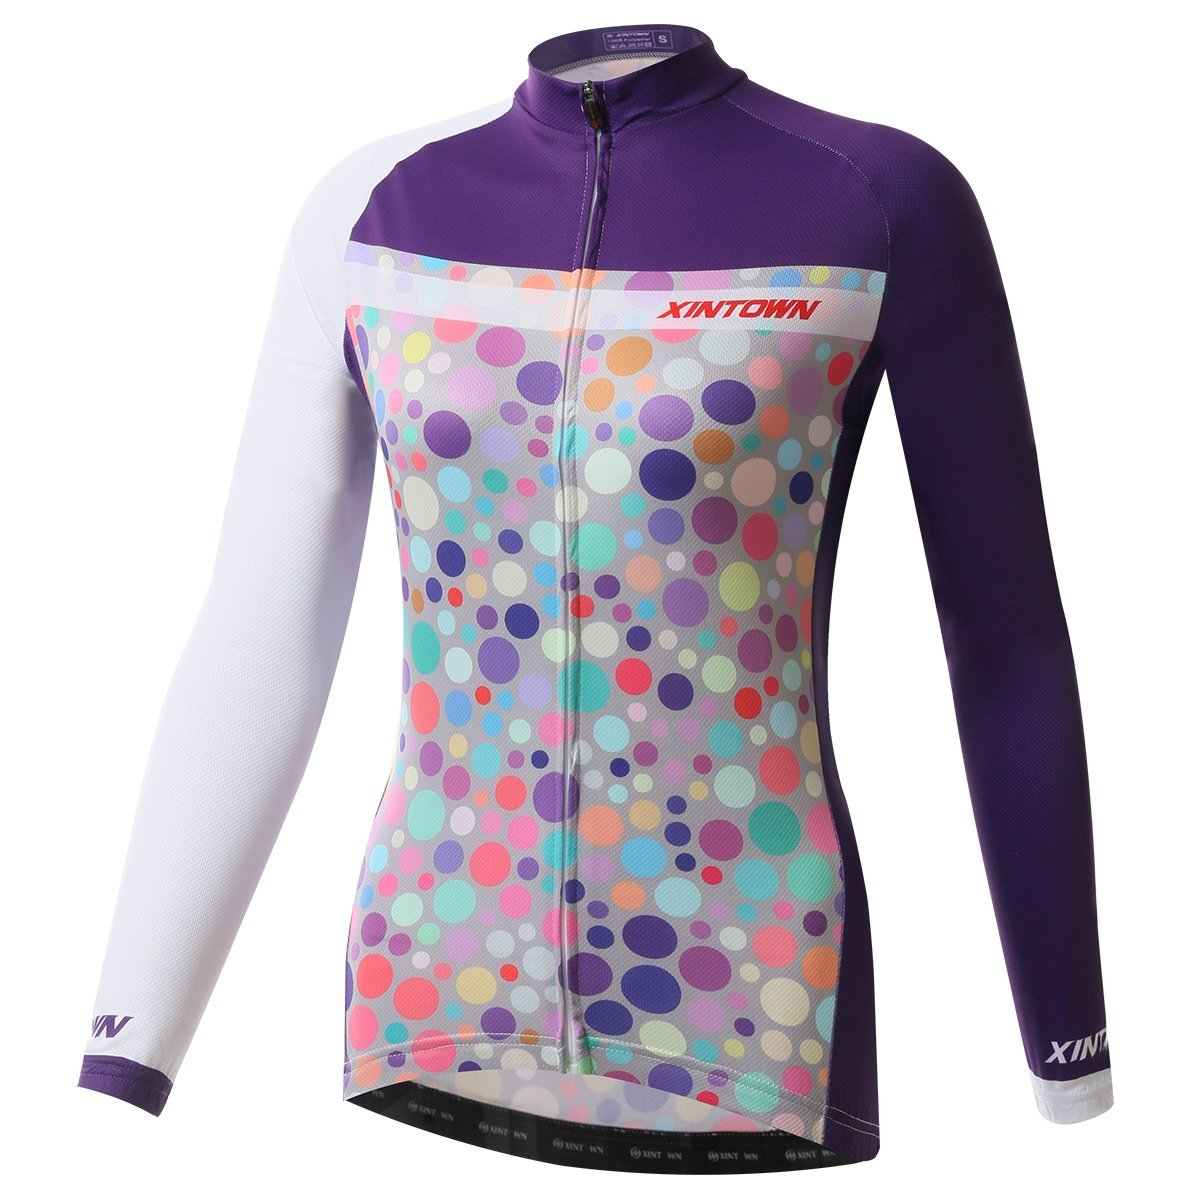 BESYL Womens Printed High-Performance Mesh Cycling Clothing Suit, Breathable Long Sleeve Cycling Jersey and Bib Padded Pants Kit for Bicycle Bike Riding Biker (Purple White Colorfull Polka)